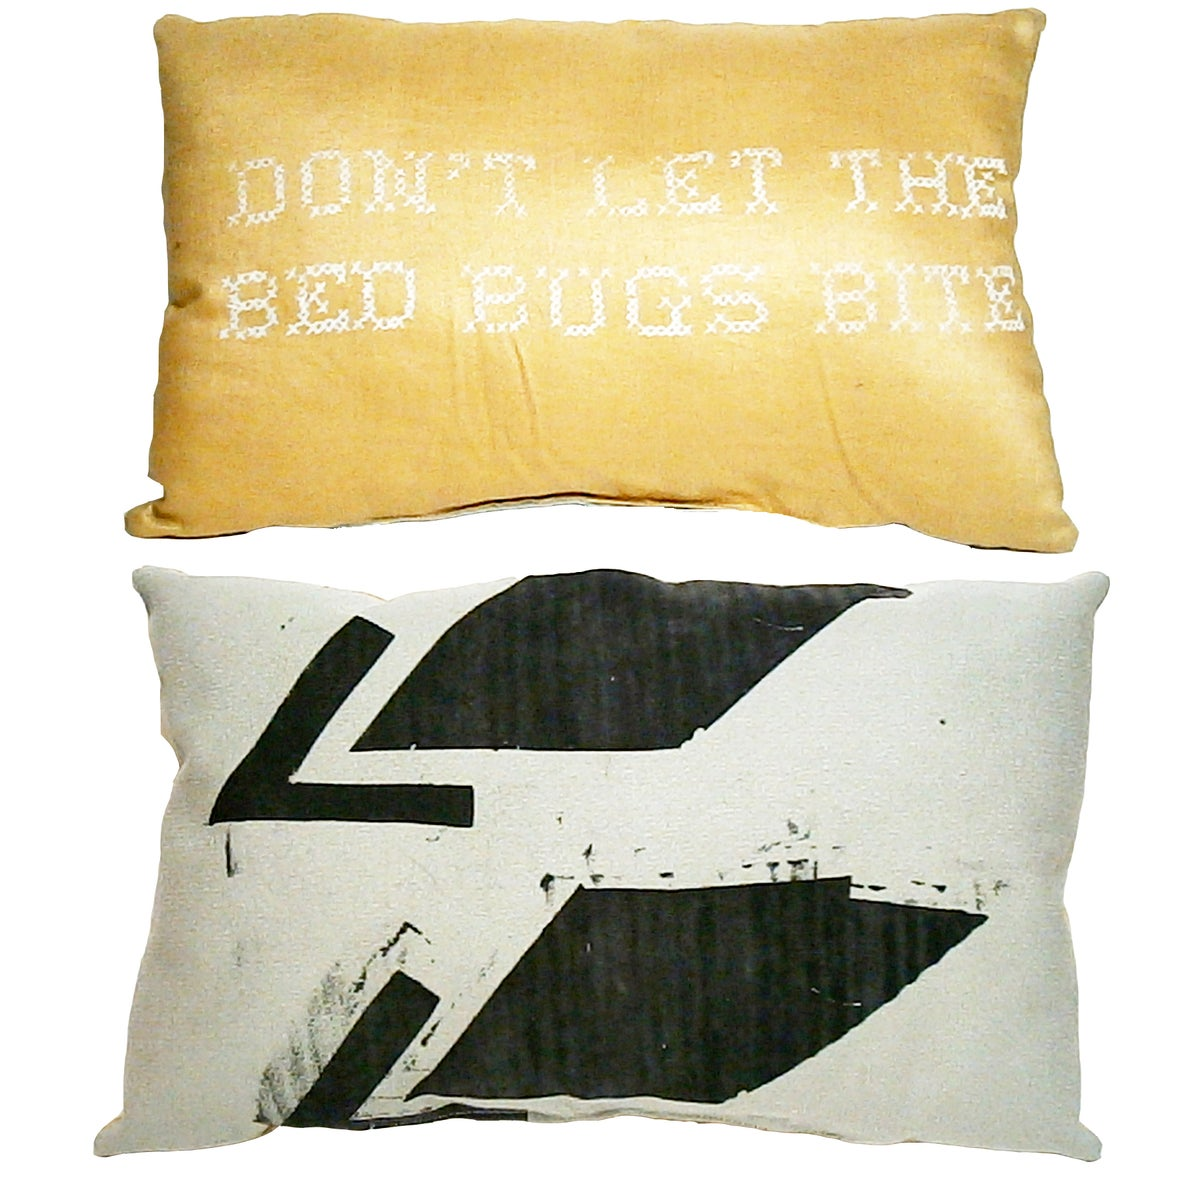 Not One Throw Pillow On The Bed :